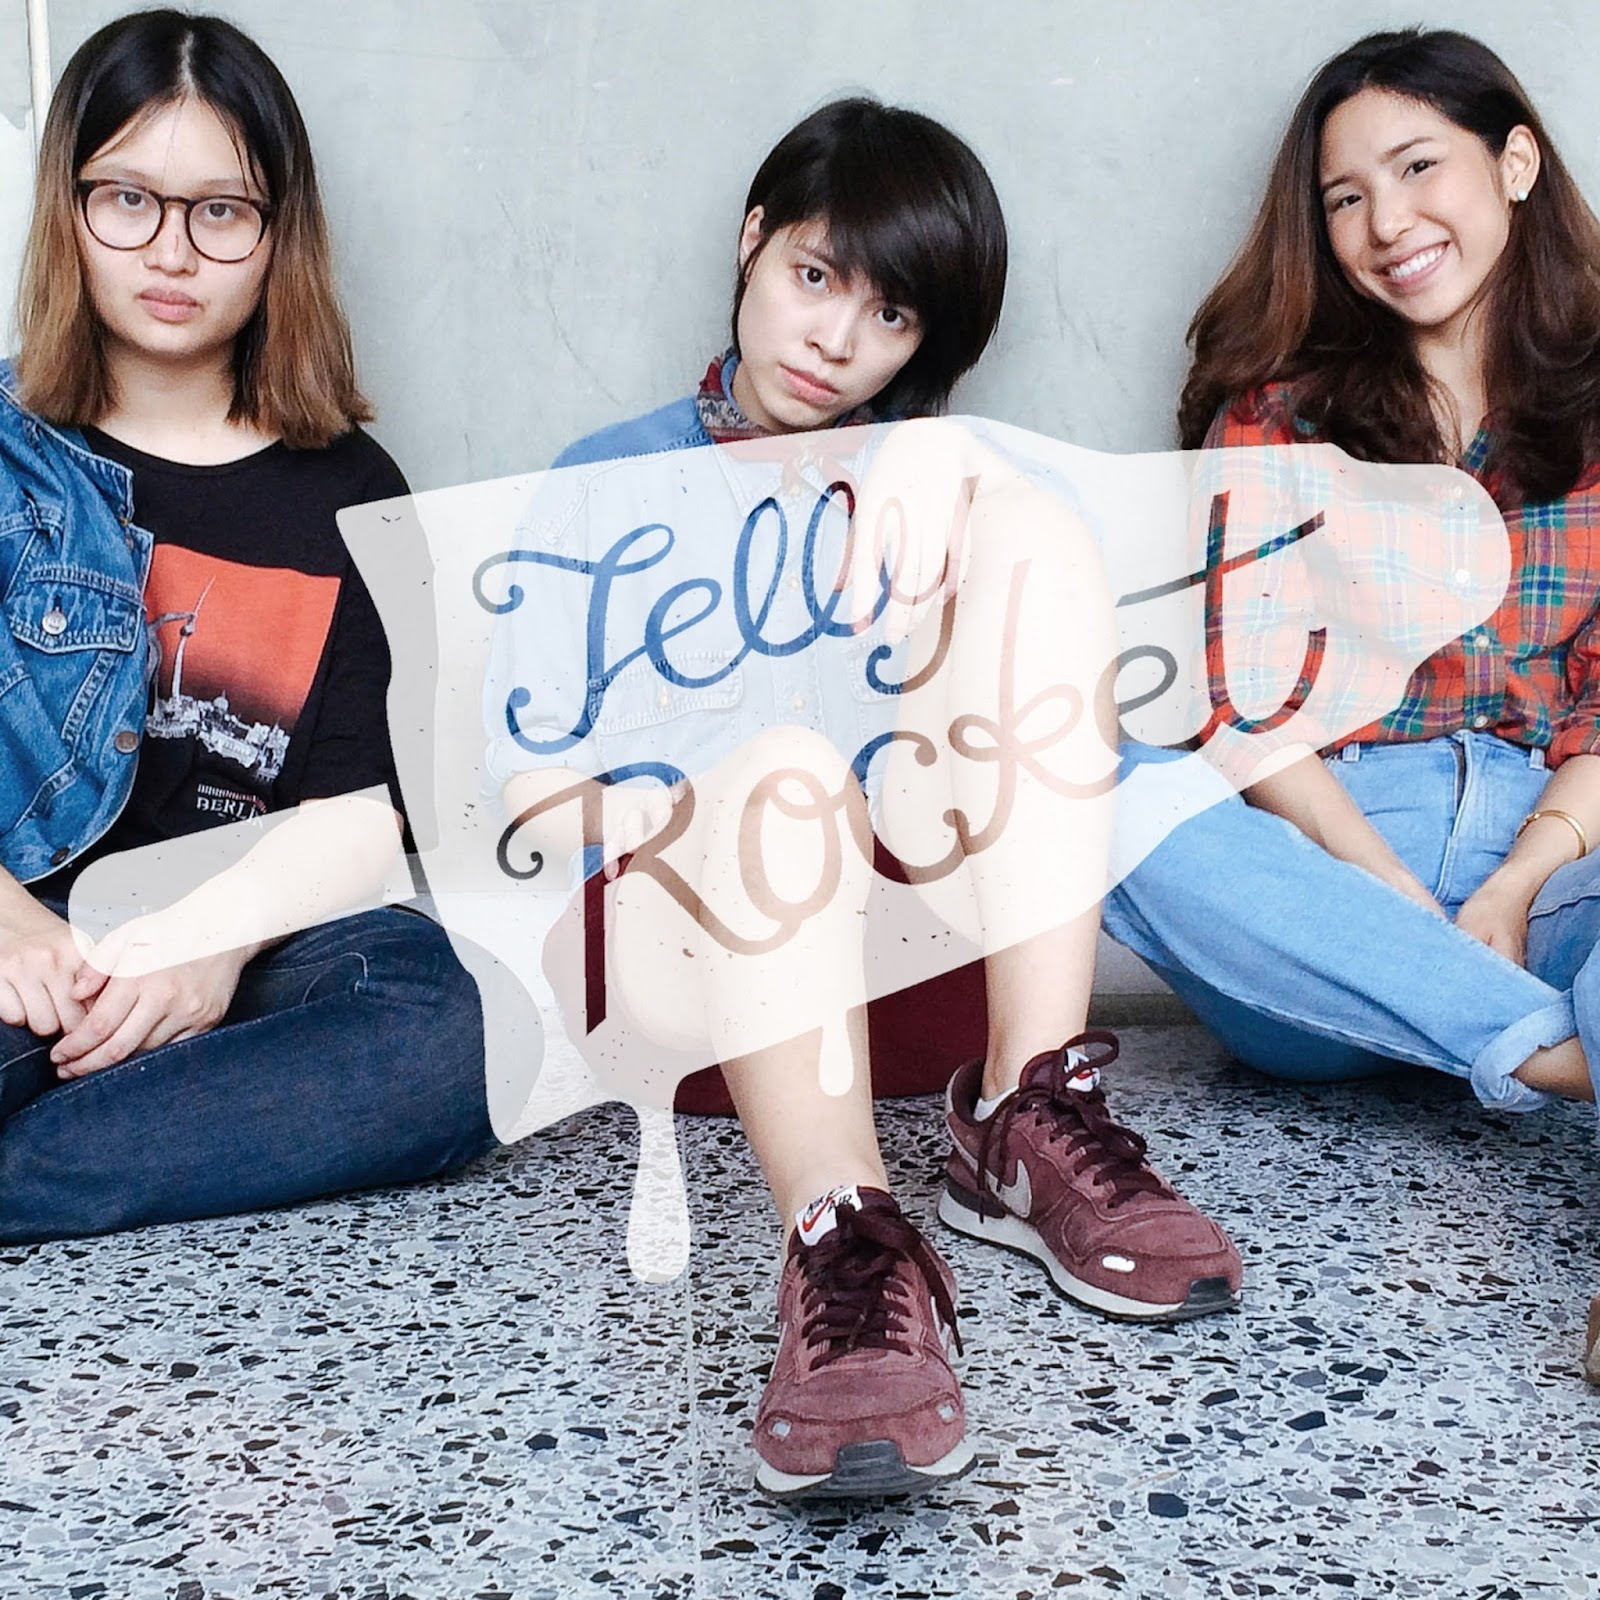 New Single : Jelly Rocket